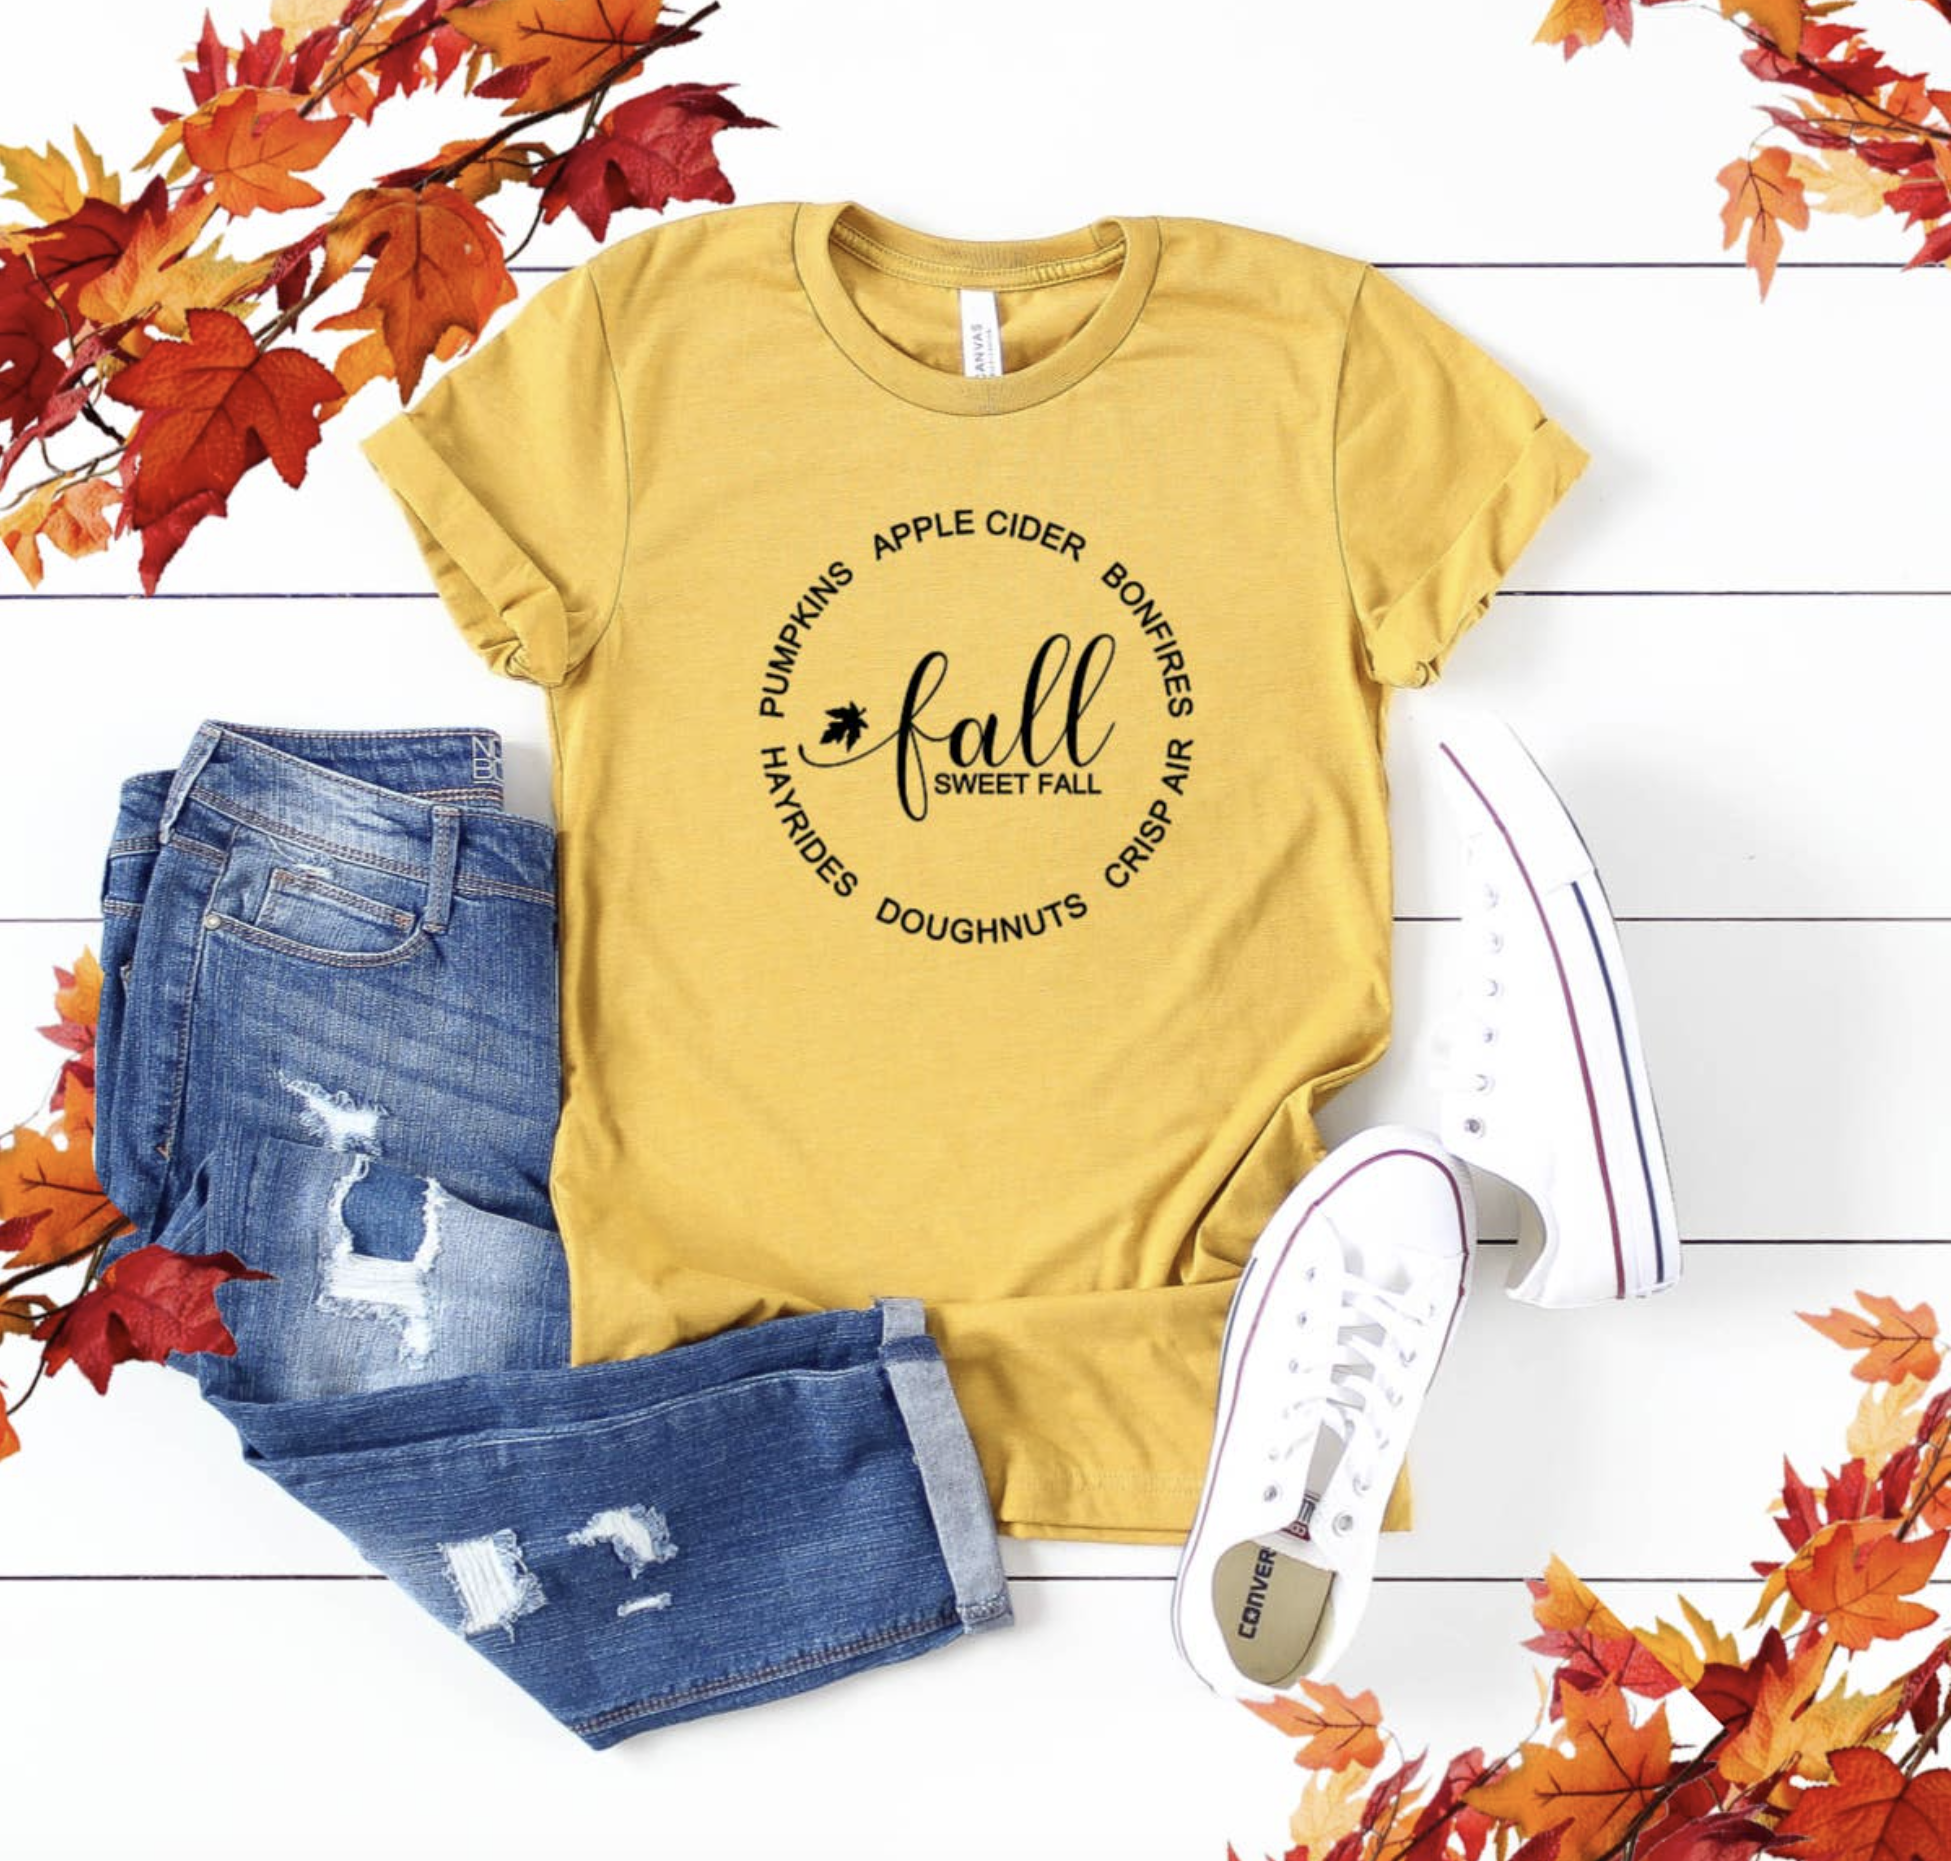 Top Crate Fall Graphic Shirt-Fall Sweet